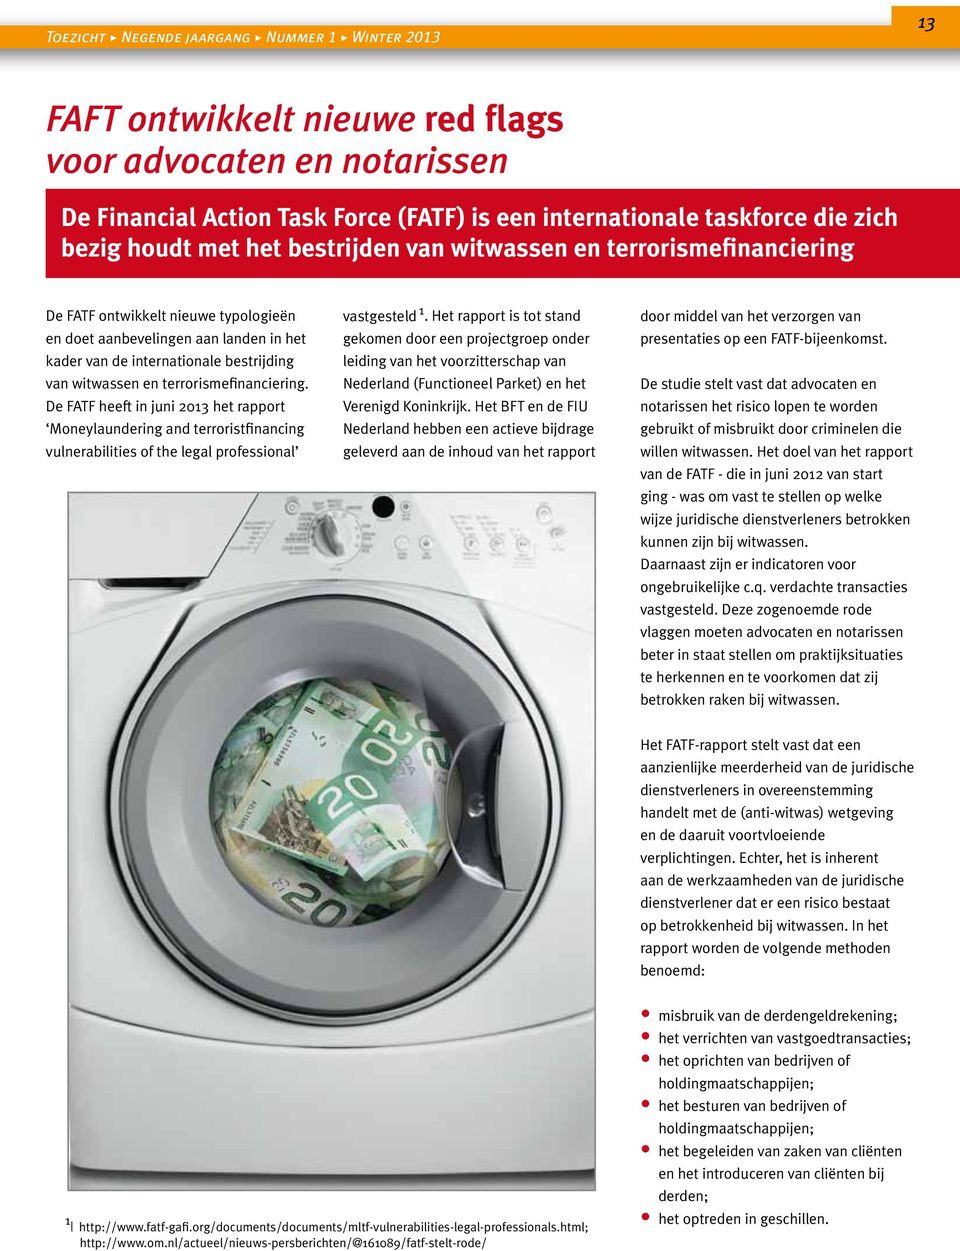 De FATF heeft in juni 2013 het rapport Moneylaundering and terroristfinancing vulnerabilities of the legal professional vastgesteld 1.